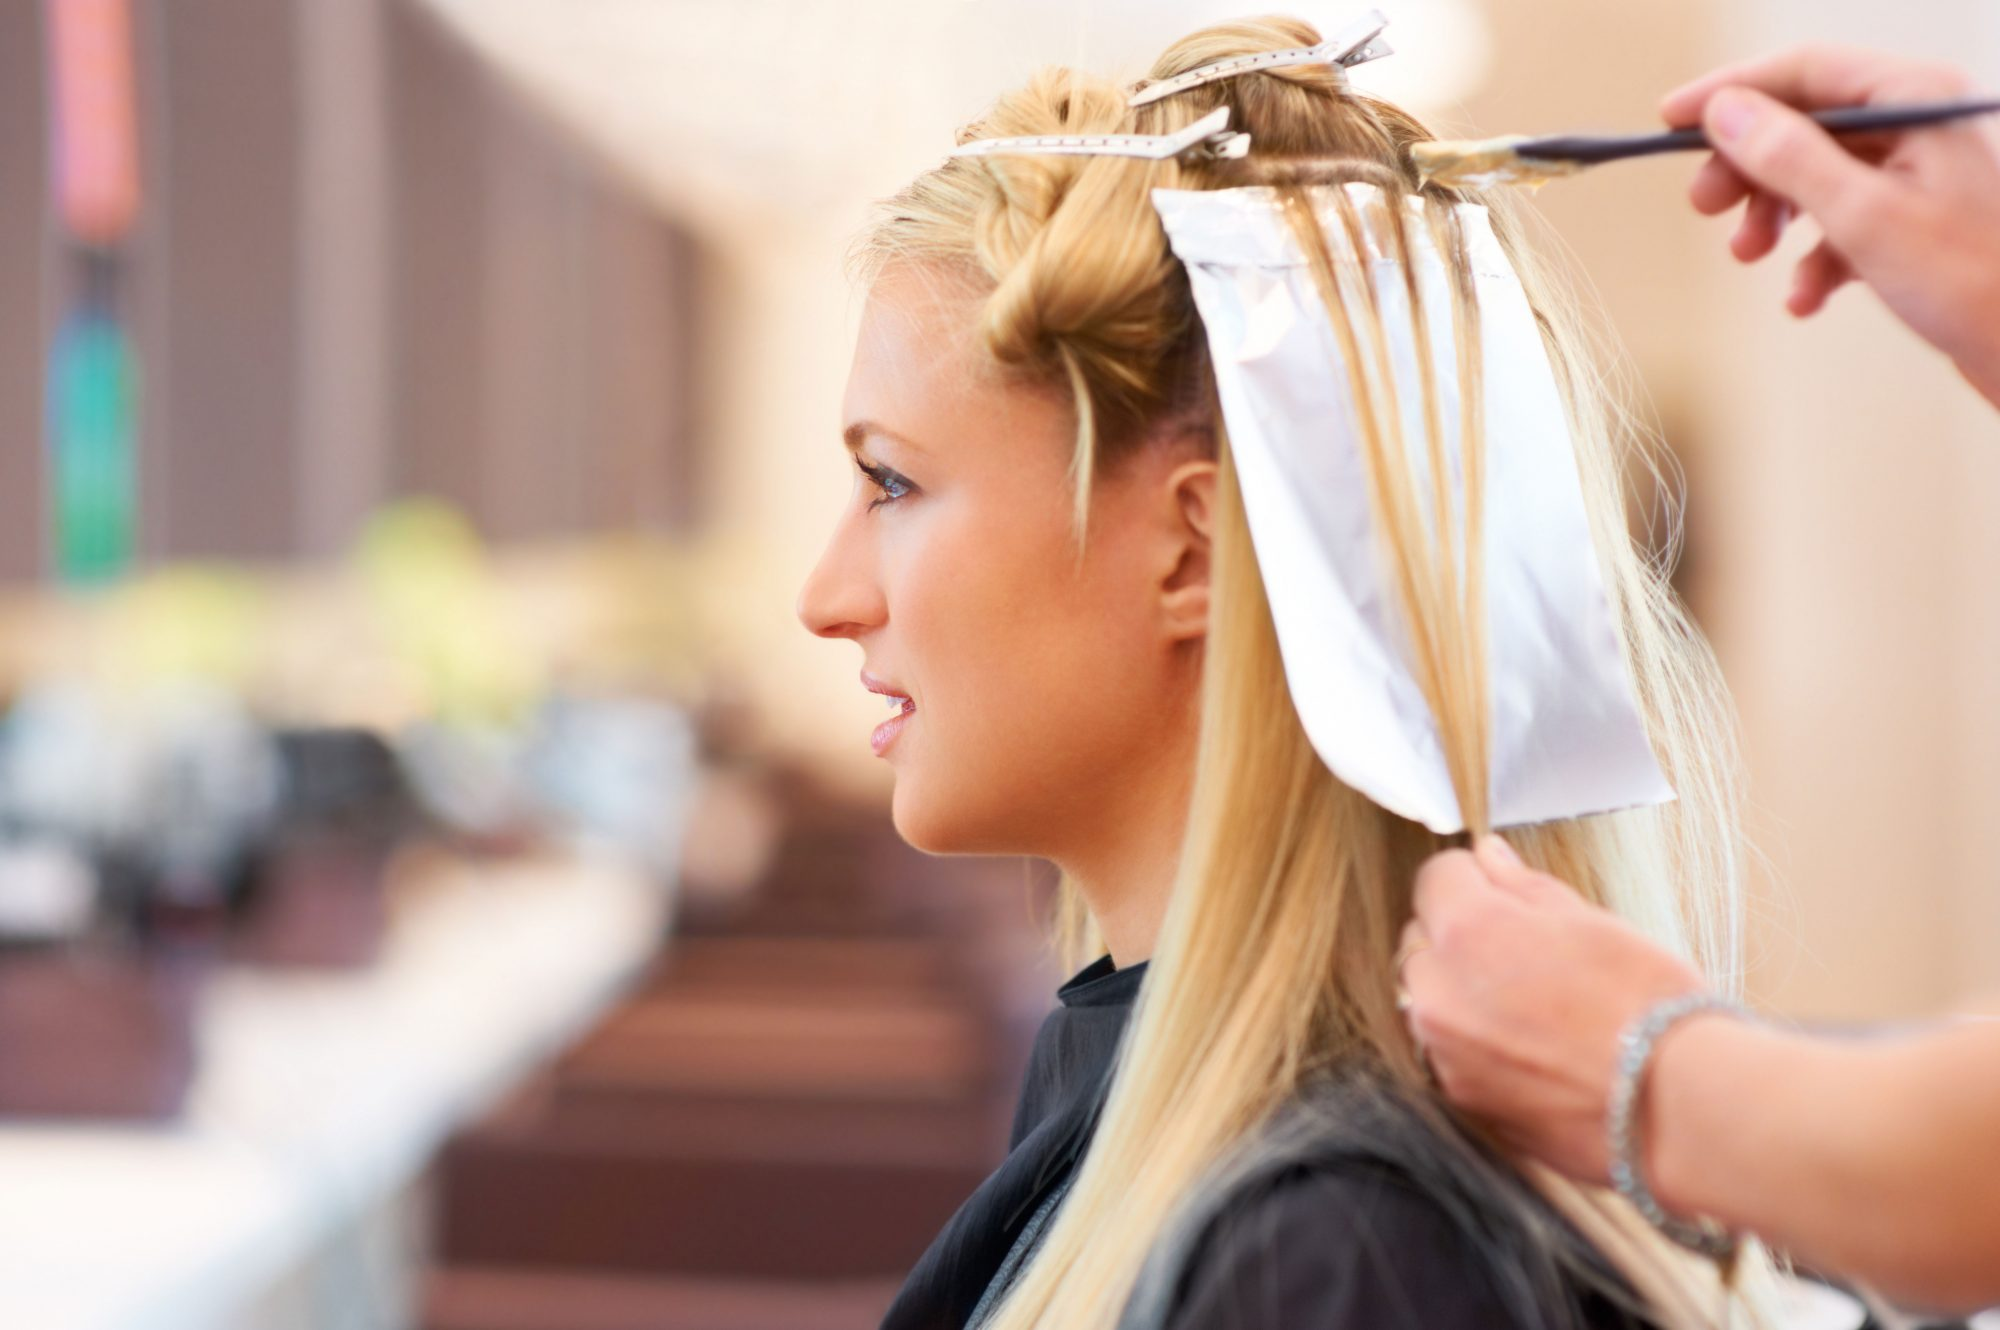 How To Get Hair Dye Off Skin Quickly And Safely Southern Living